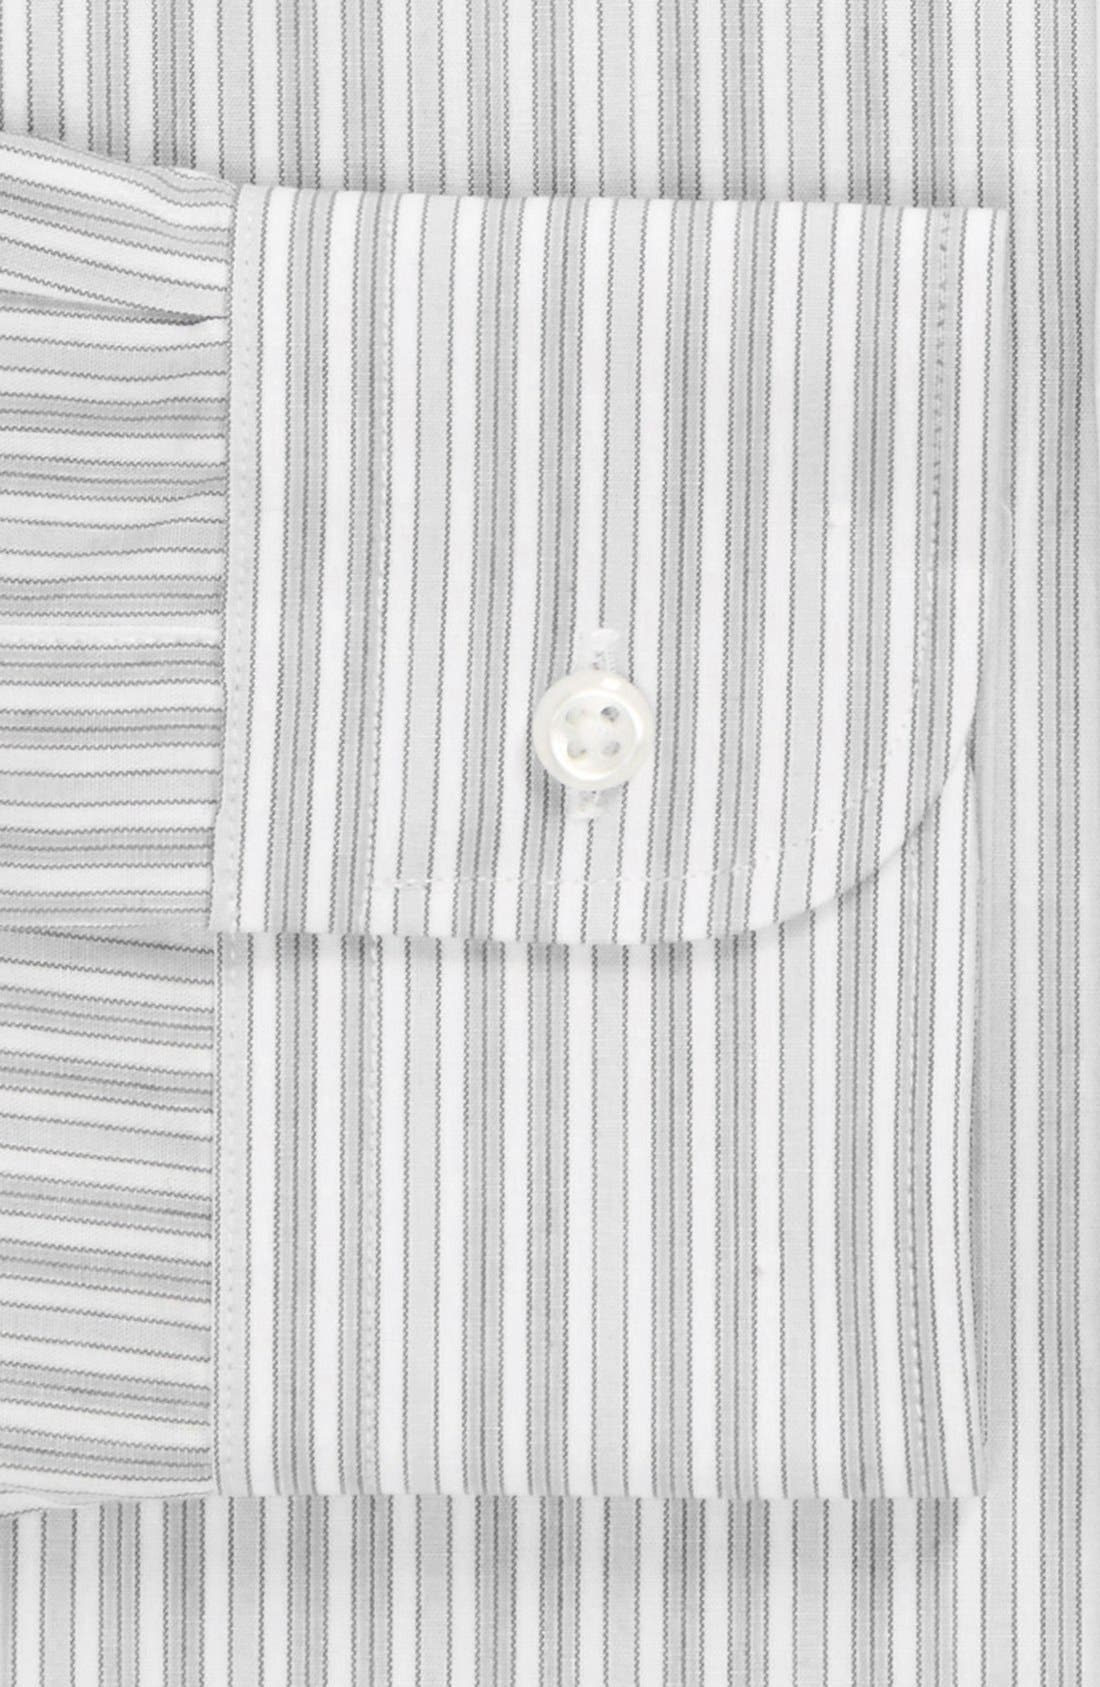 Nordstrom Classic Fit Non-Iron Dress Shirt,                             Alternate thumbnail 2, color,                             021